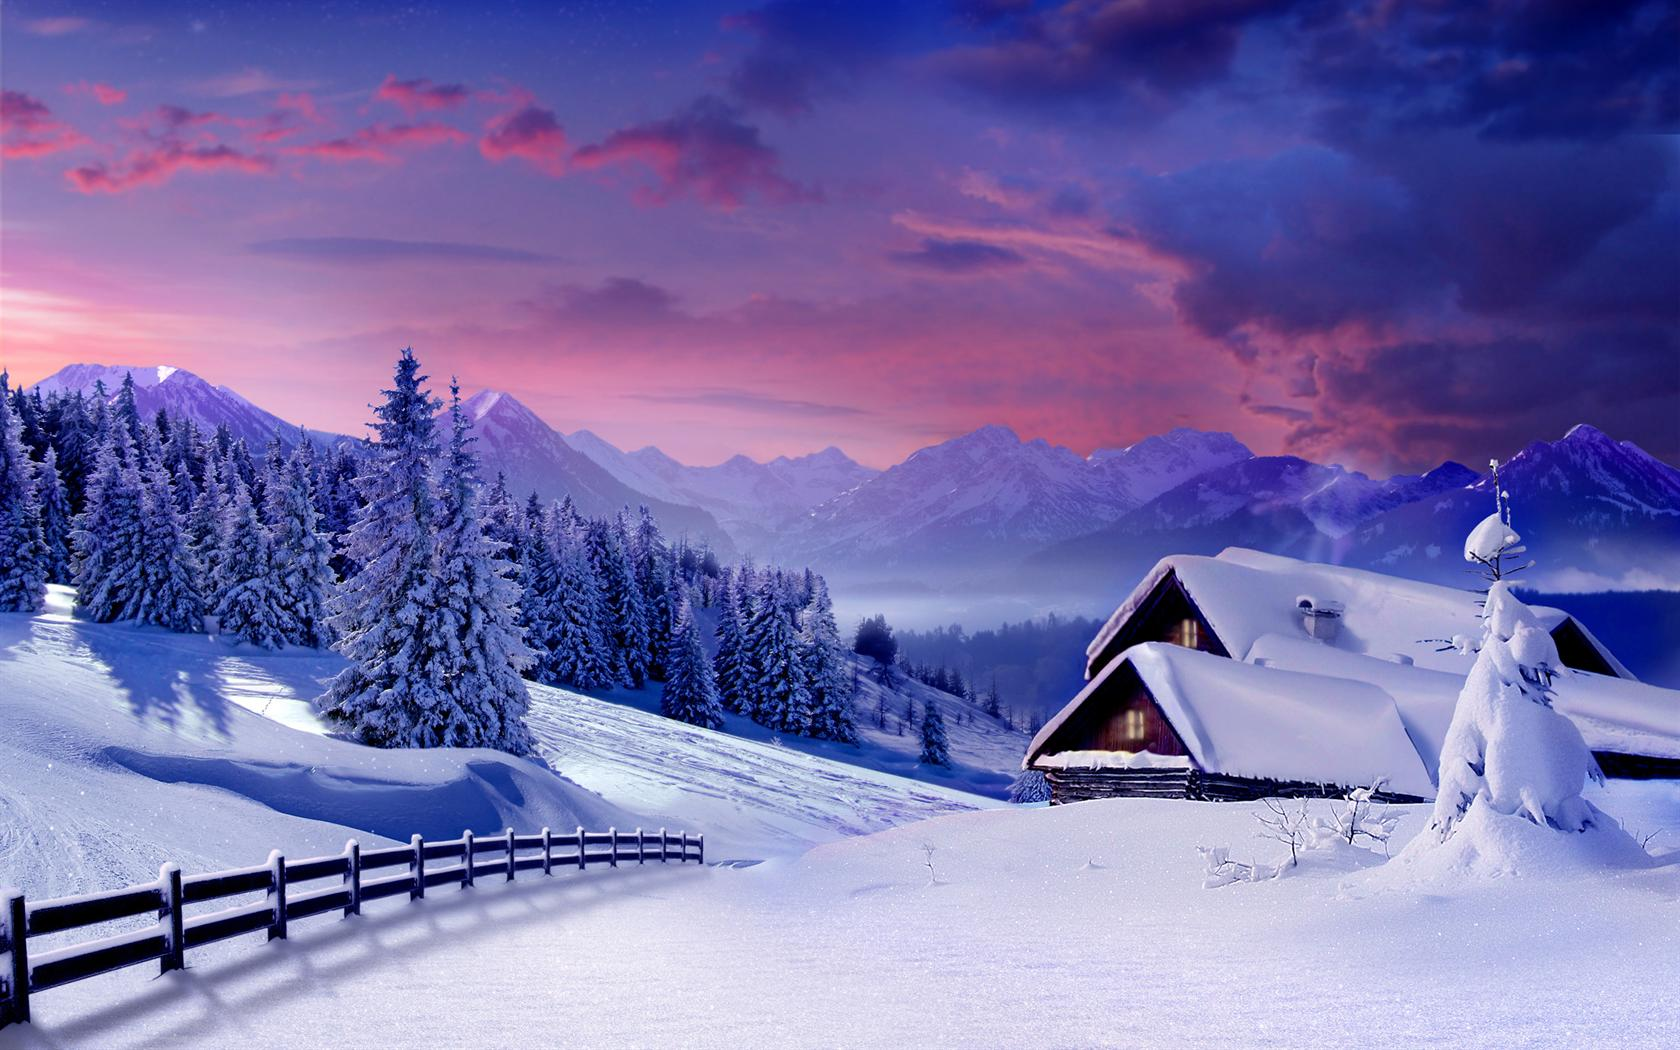 Download 1680x1050 Winter in the mountains Desktop 1680x1050